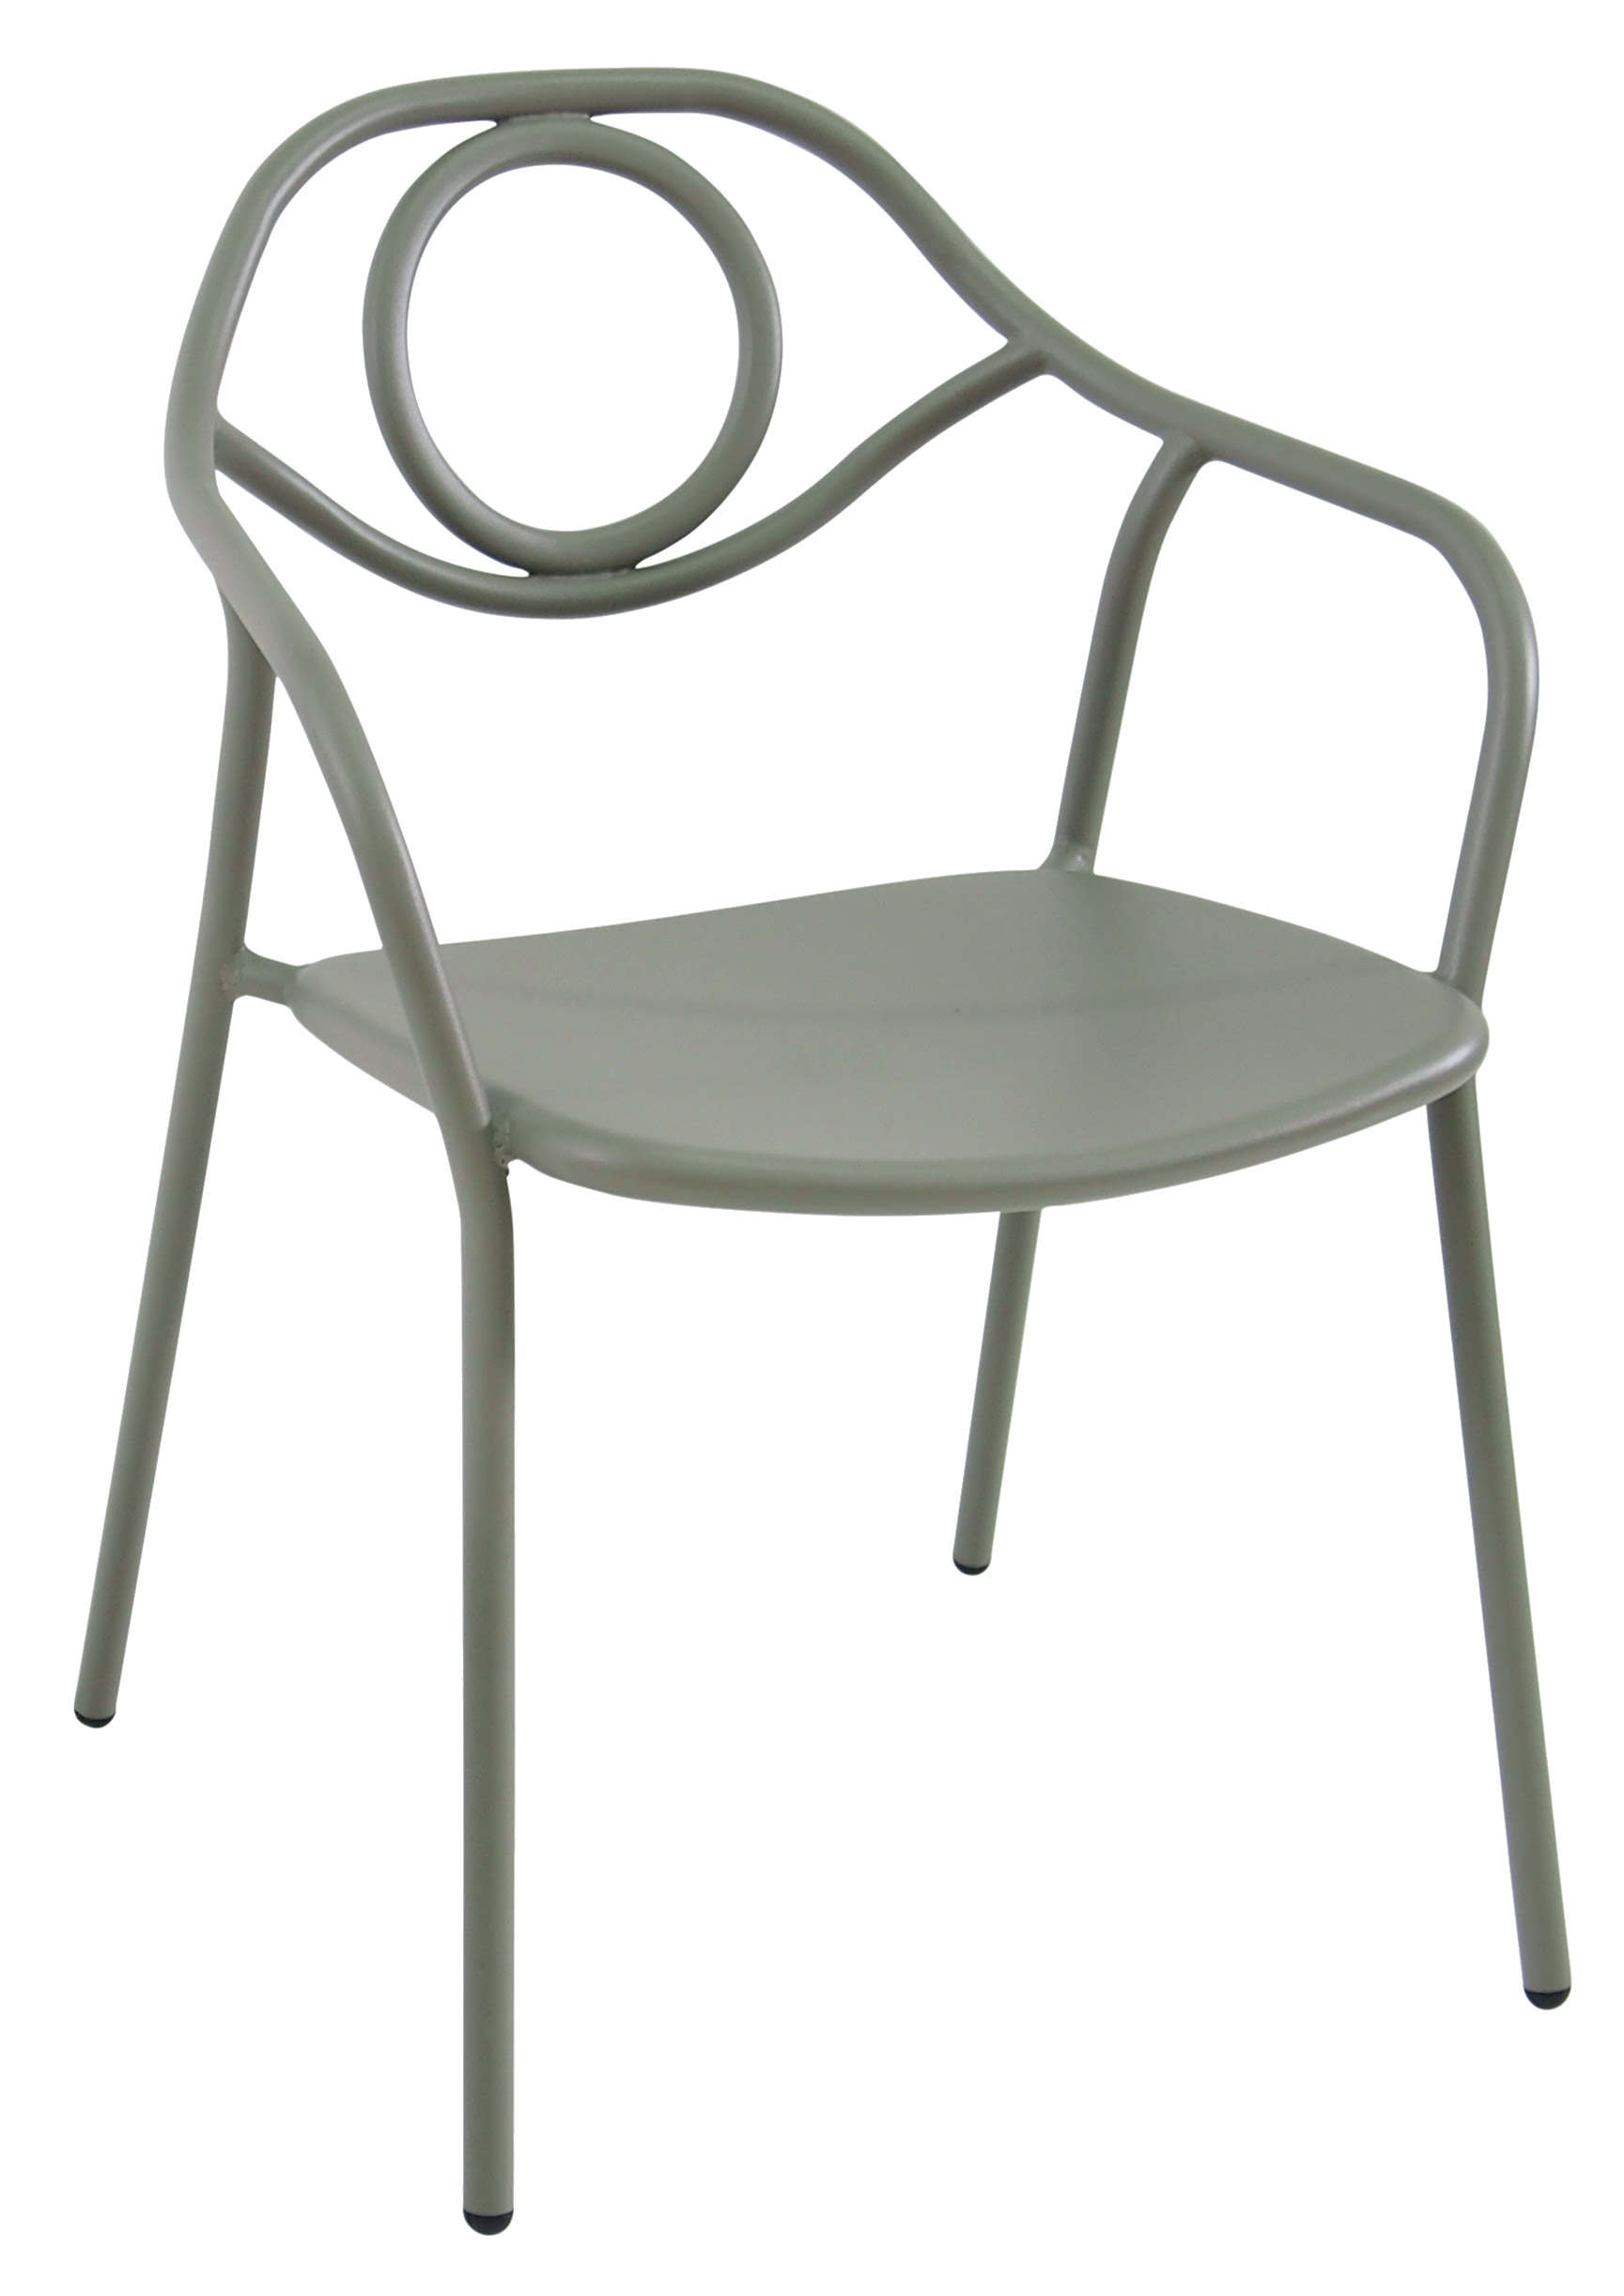 emuamericas, llc 653 chair, armchair, stacking, outdoor